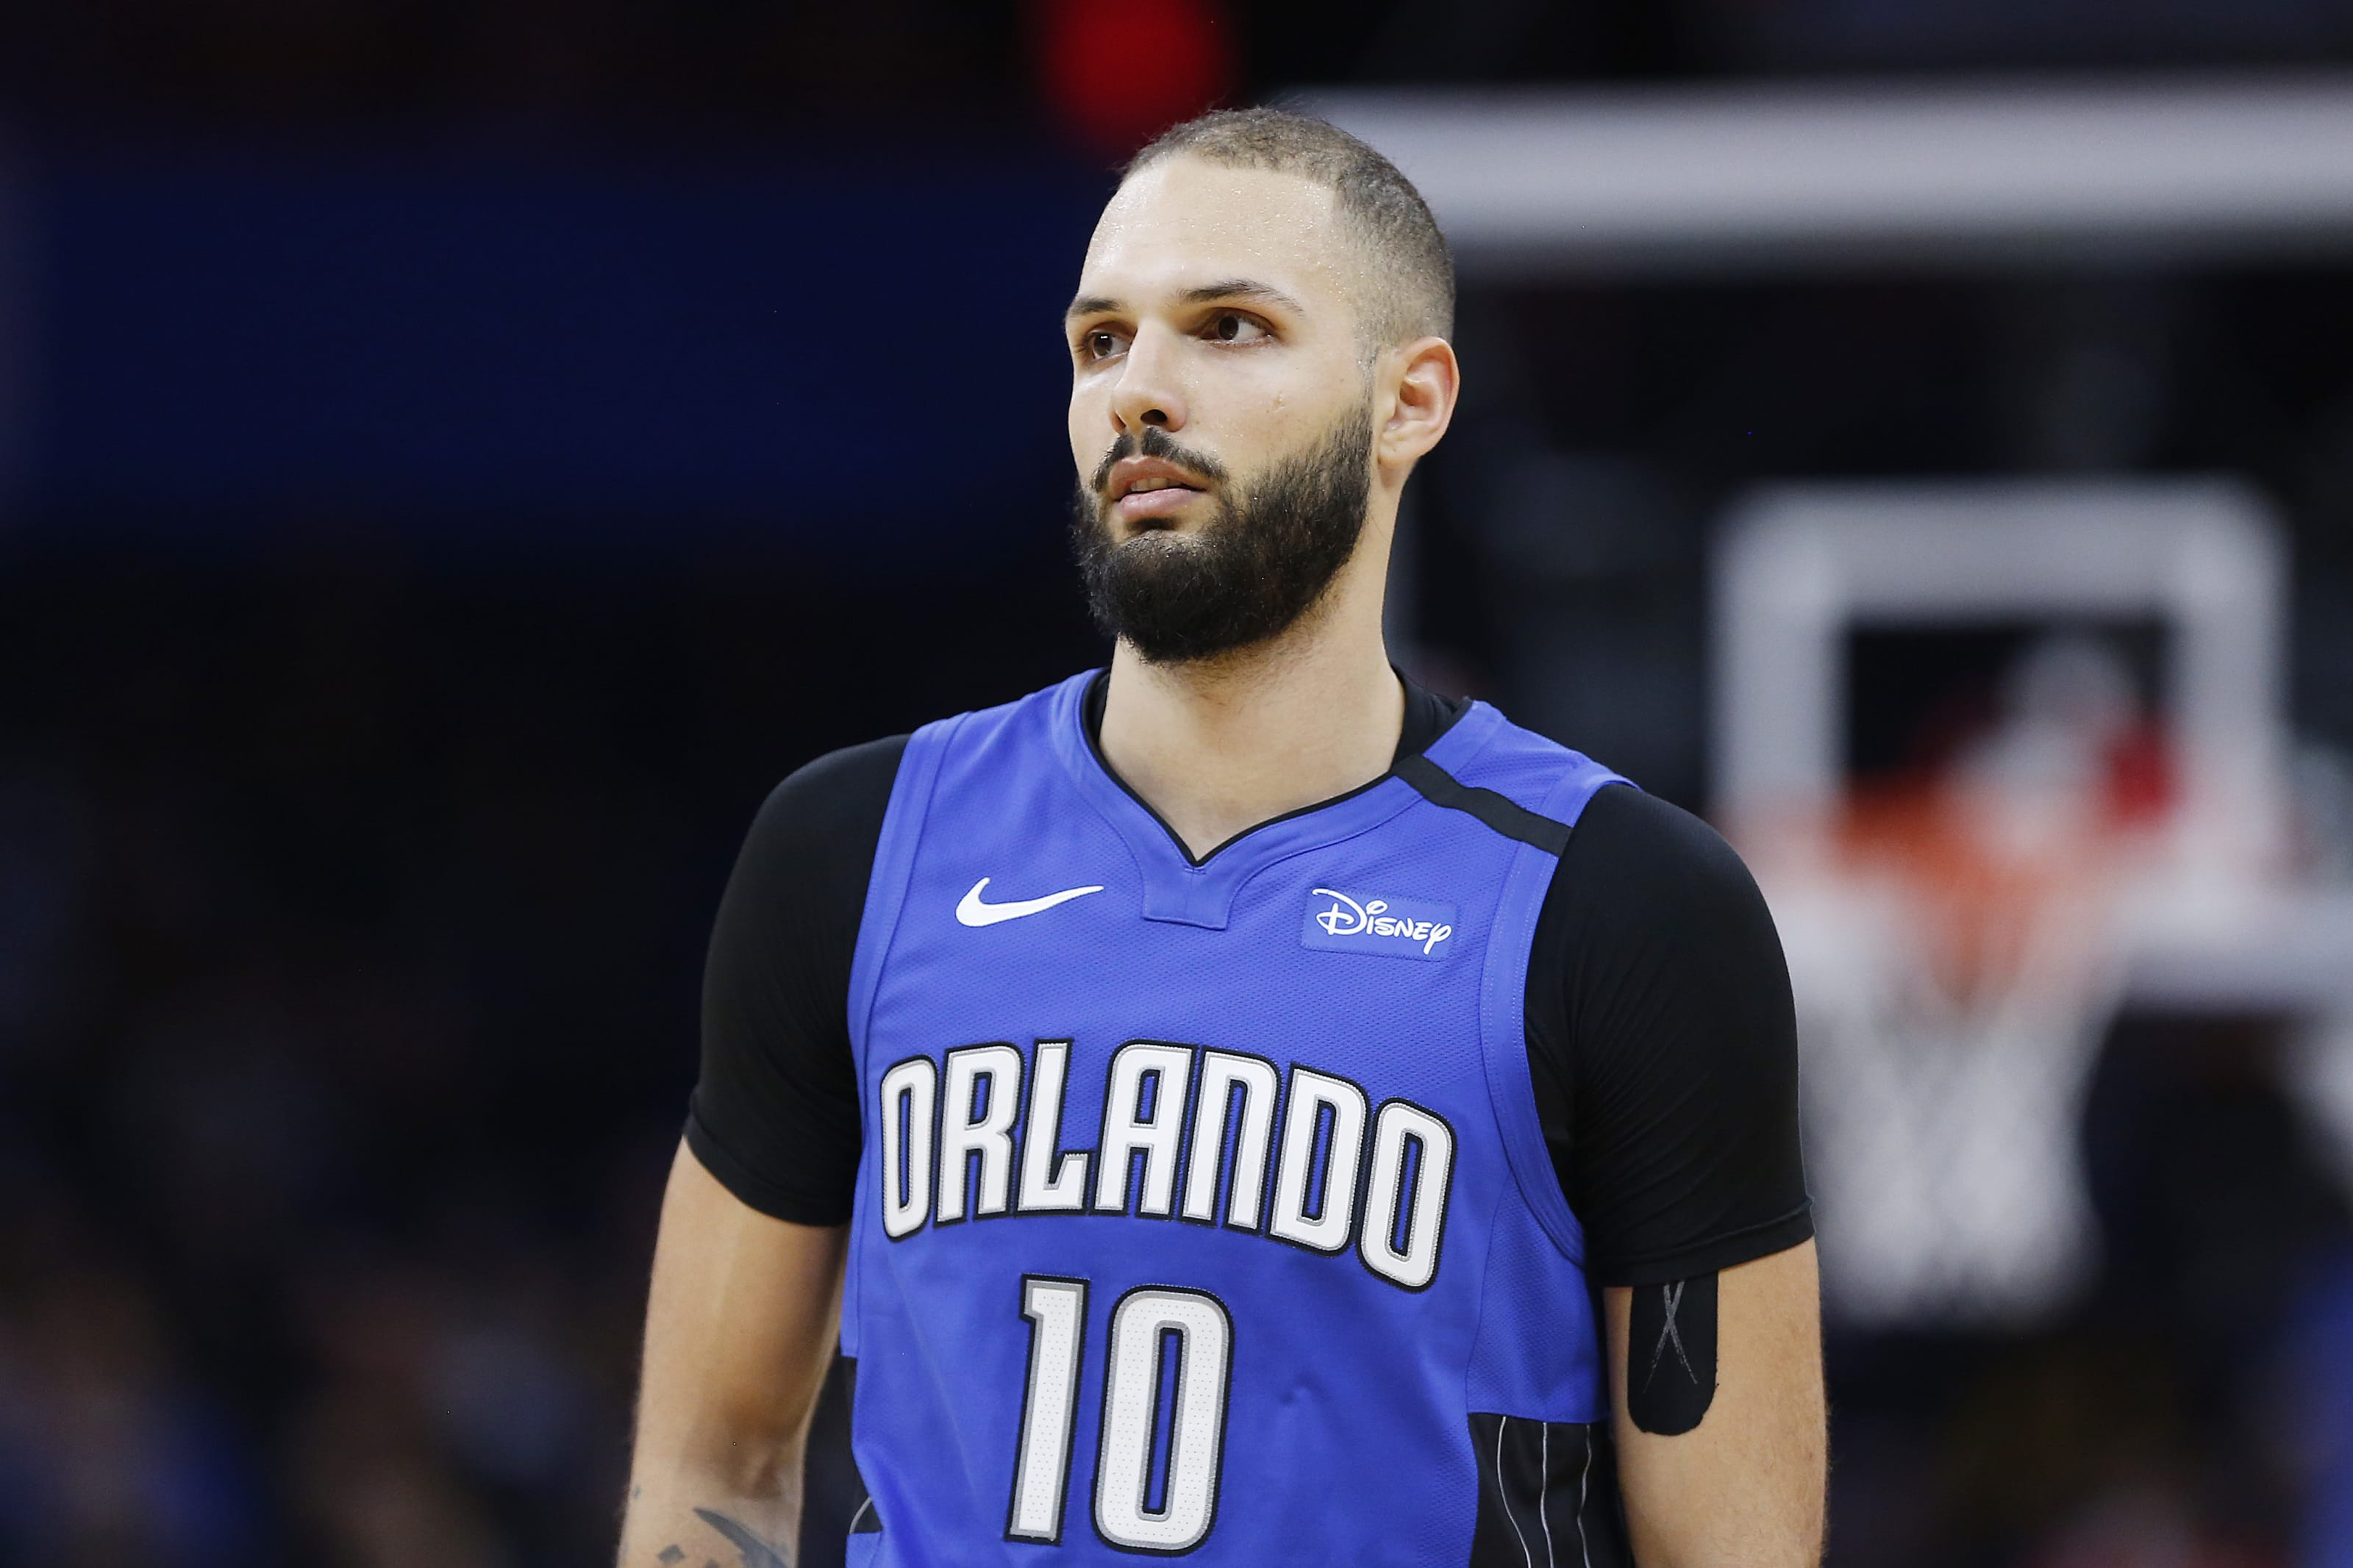 Orlando Magic: They won't be able to move Evan Fournier